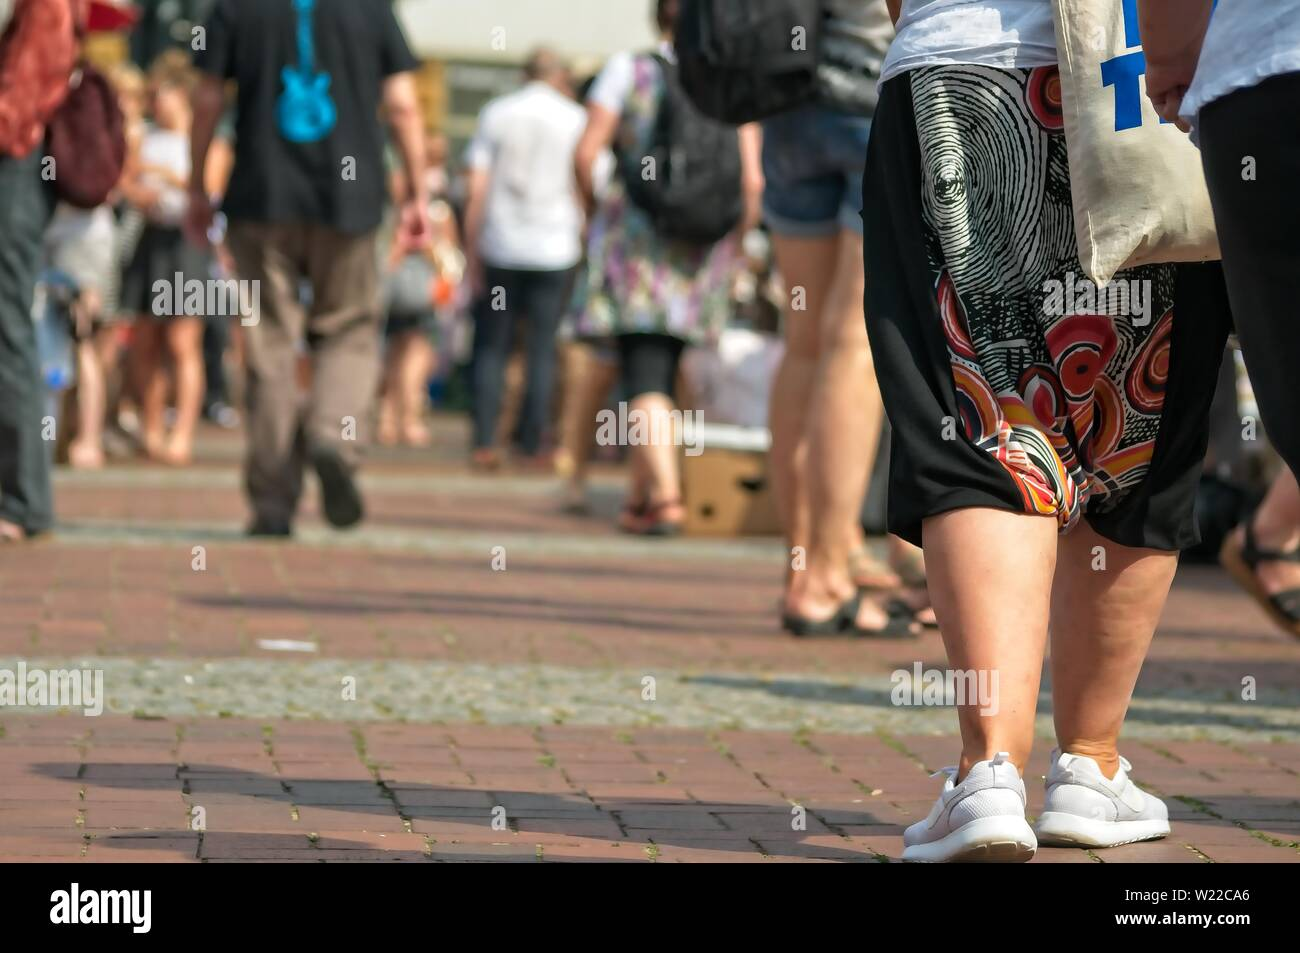 people at a weekend flea market on the streets with blurred background - Stock Image